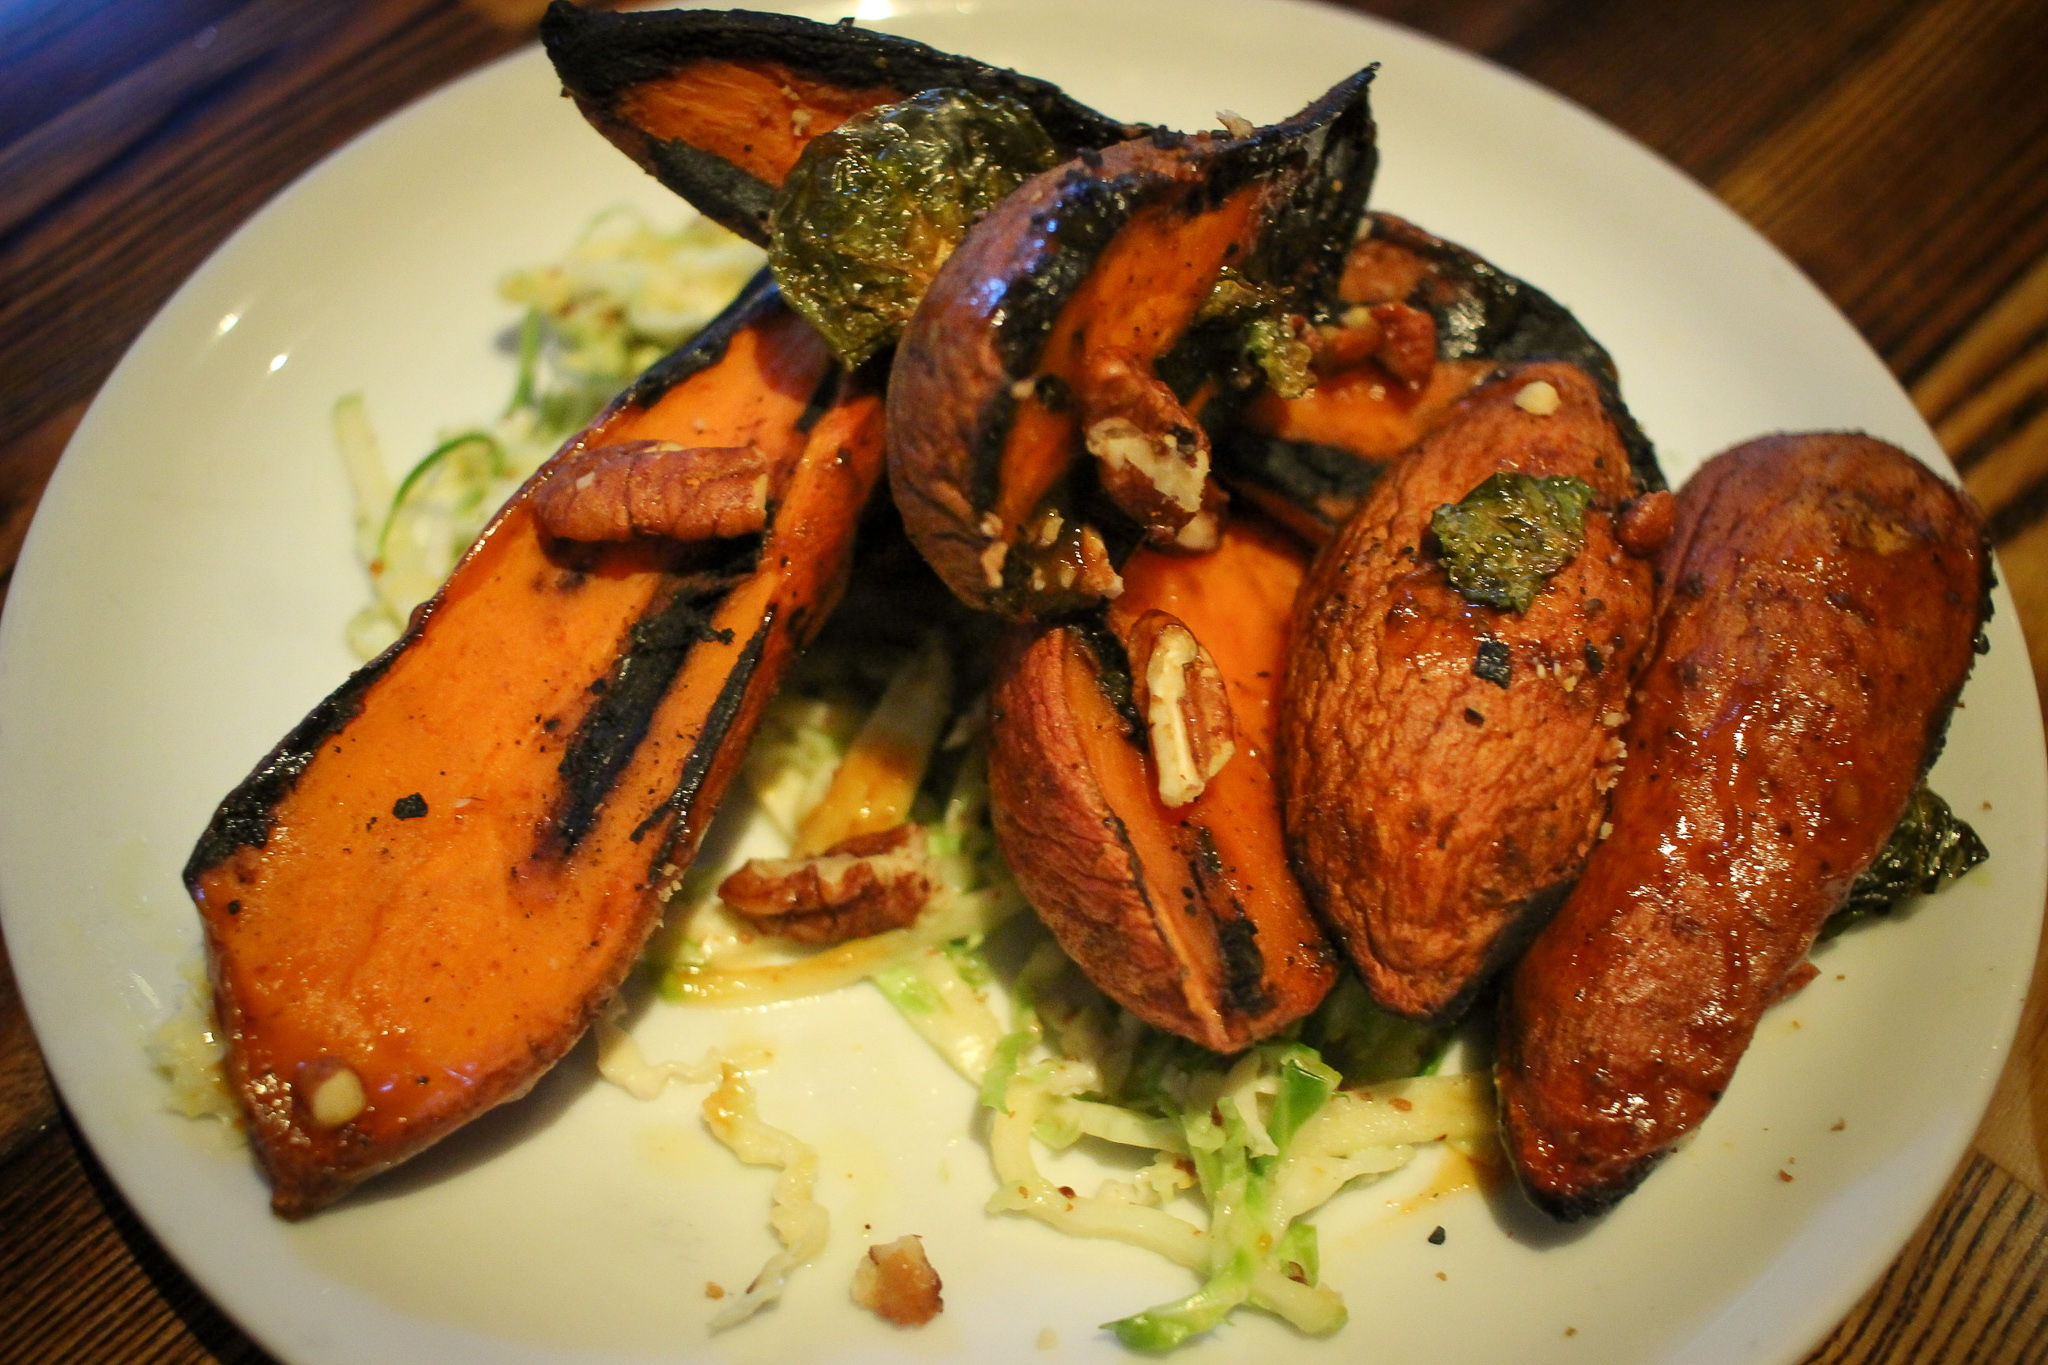 BBQ sweet potatoes with brussels-apple slaw and spiced pecans